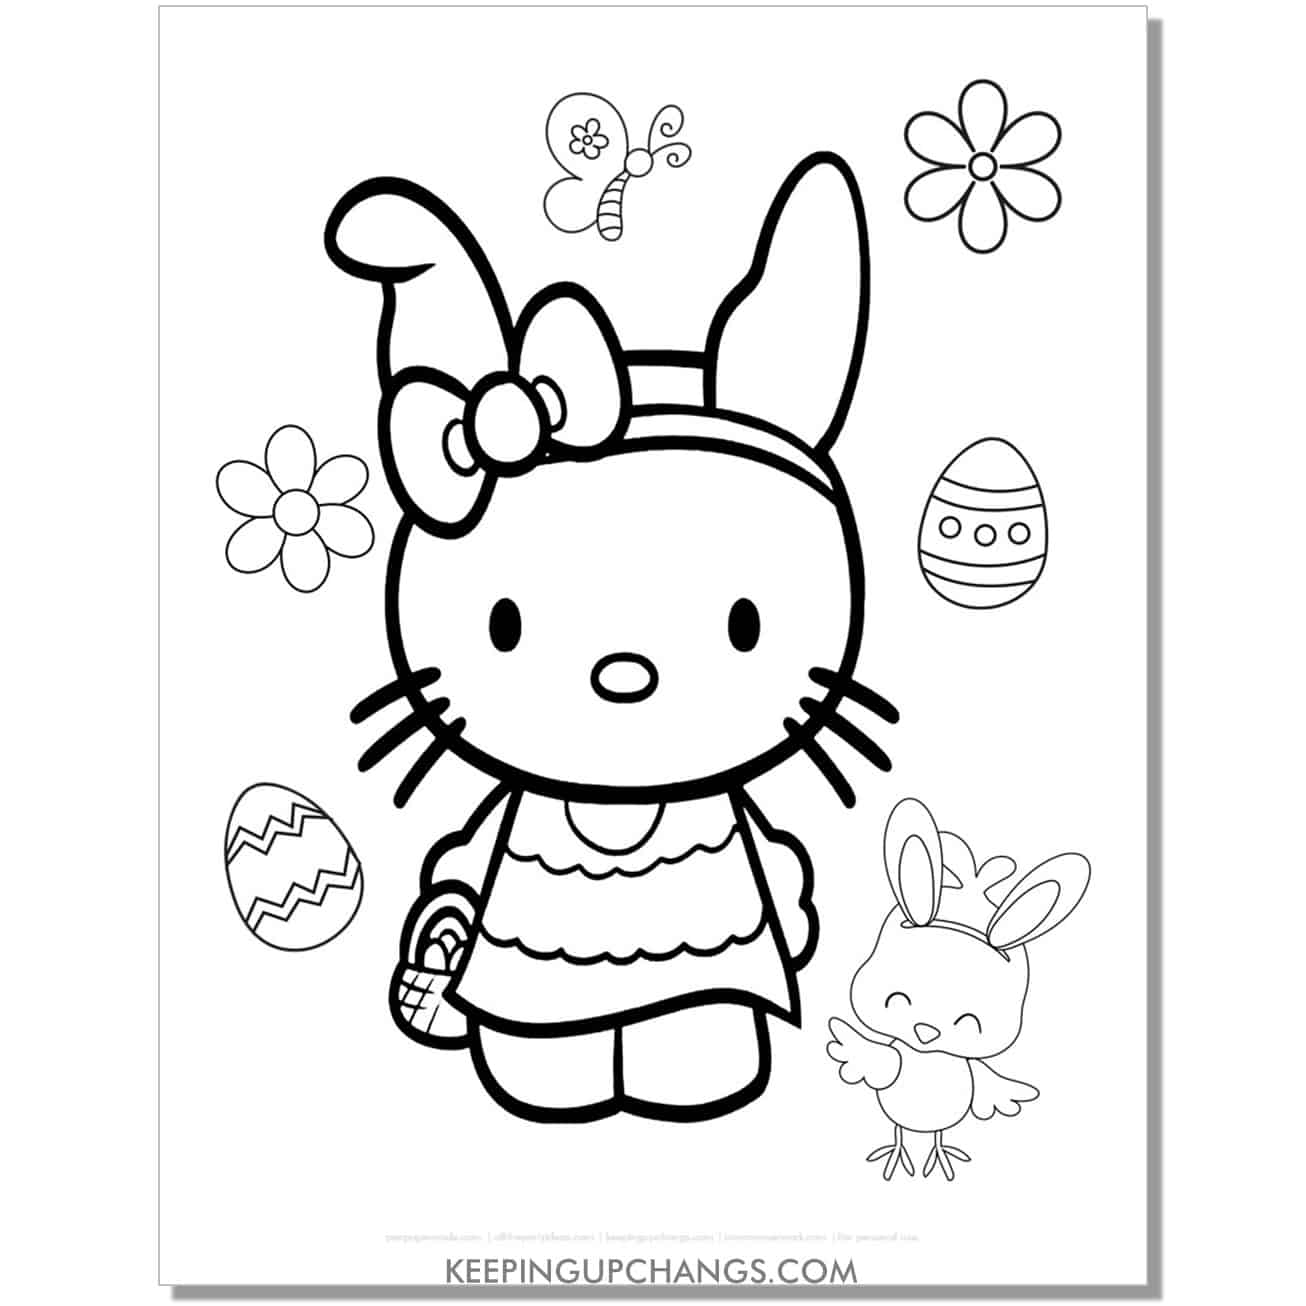 easter bunny hello kitty coloring page with eggs, butterfly, and chick.